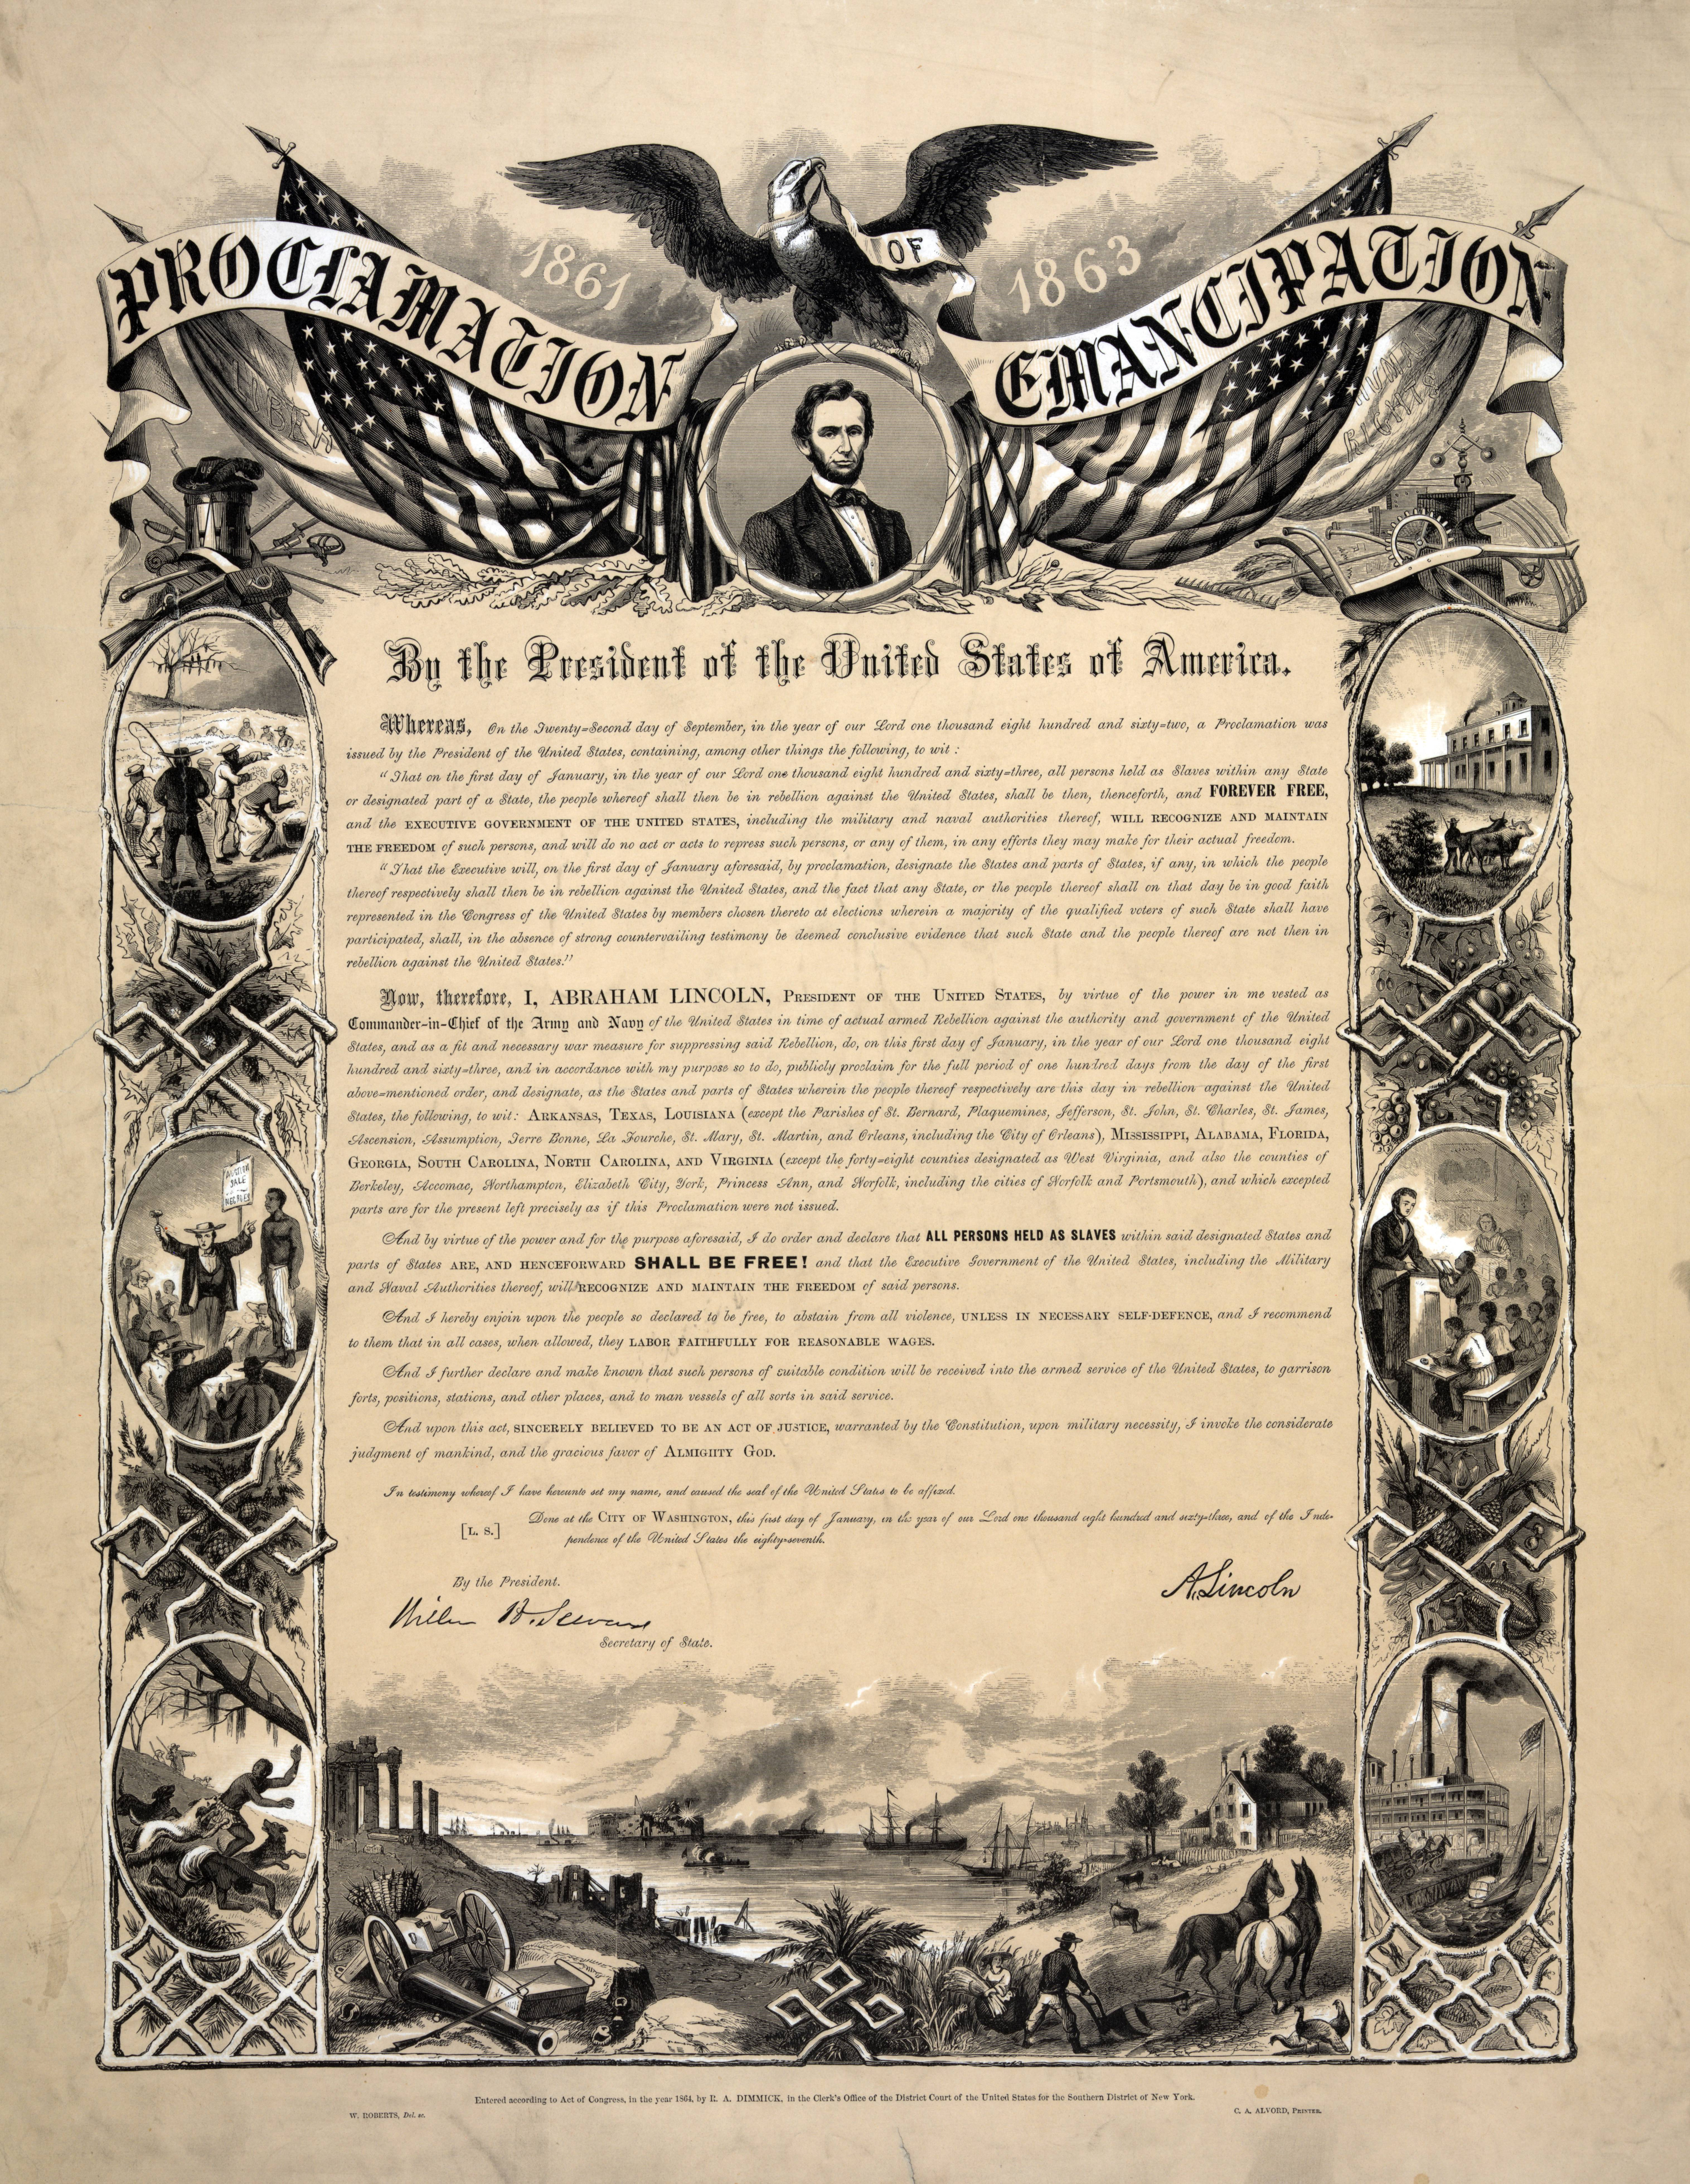 the role of slaves in the american society after the emancipation proclamation in 1863 Library of congress more than 186,000 african american soldiers the emancipation proclamation of 1863 marked the official beginning of freedom for.